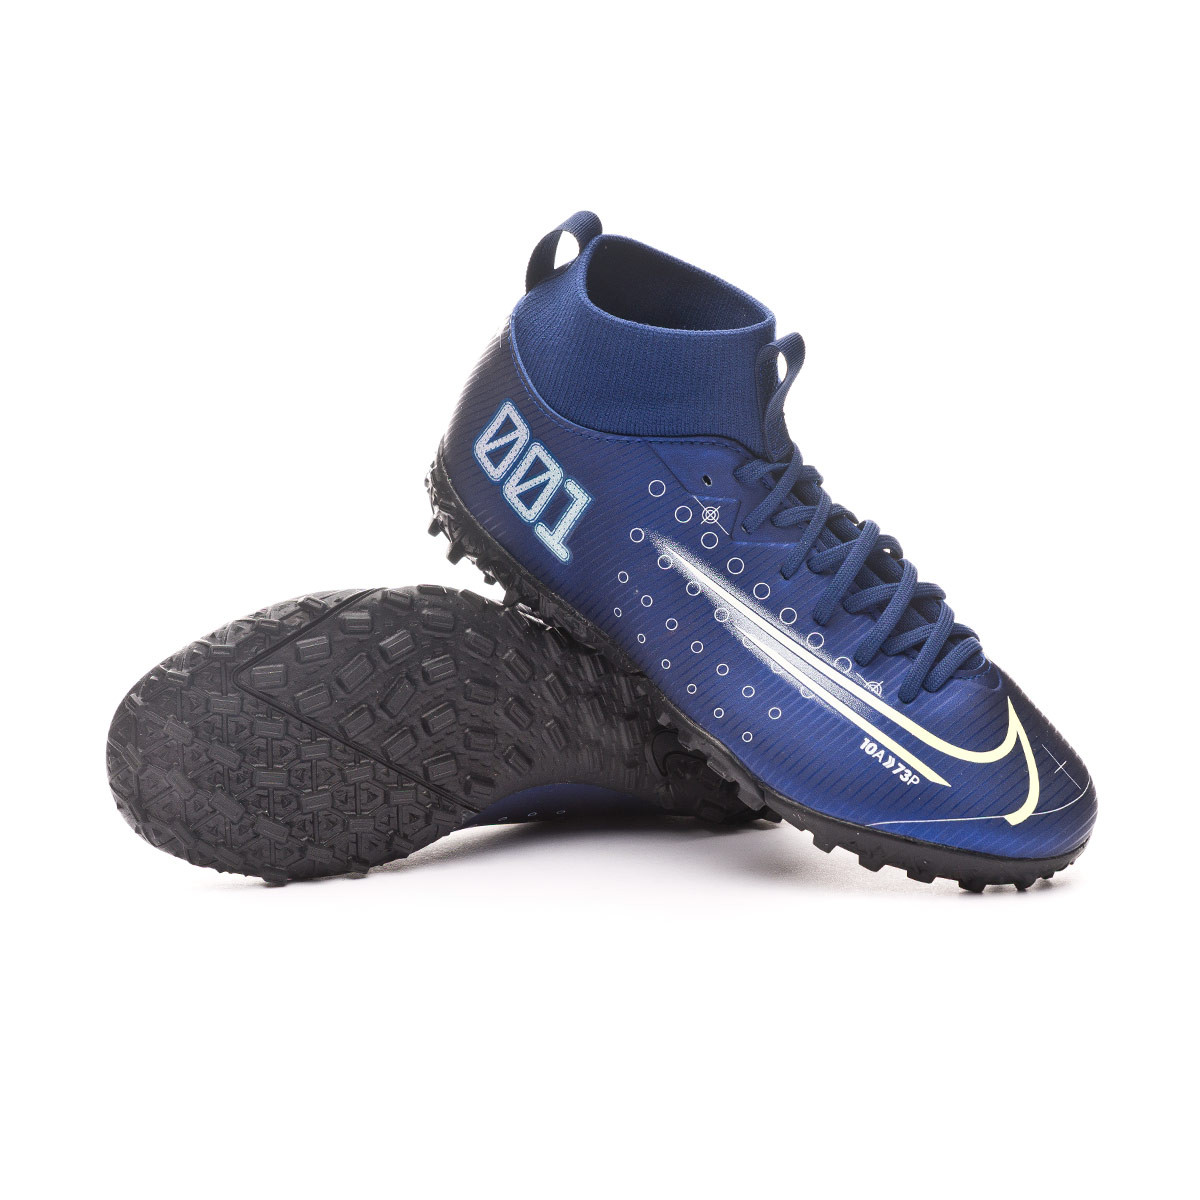 Amigo por correspondencia estilo colegio  Football Boots Nike Kids Mercurial Superfly VII Academy MDS Turf Blue  void-Barely volt-White-Black - Football store Fútbol Emotion